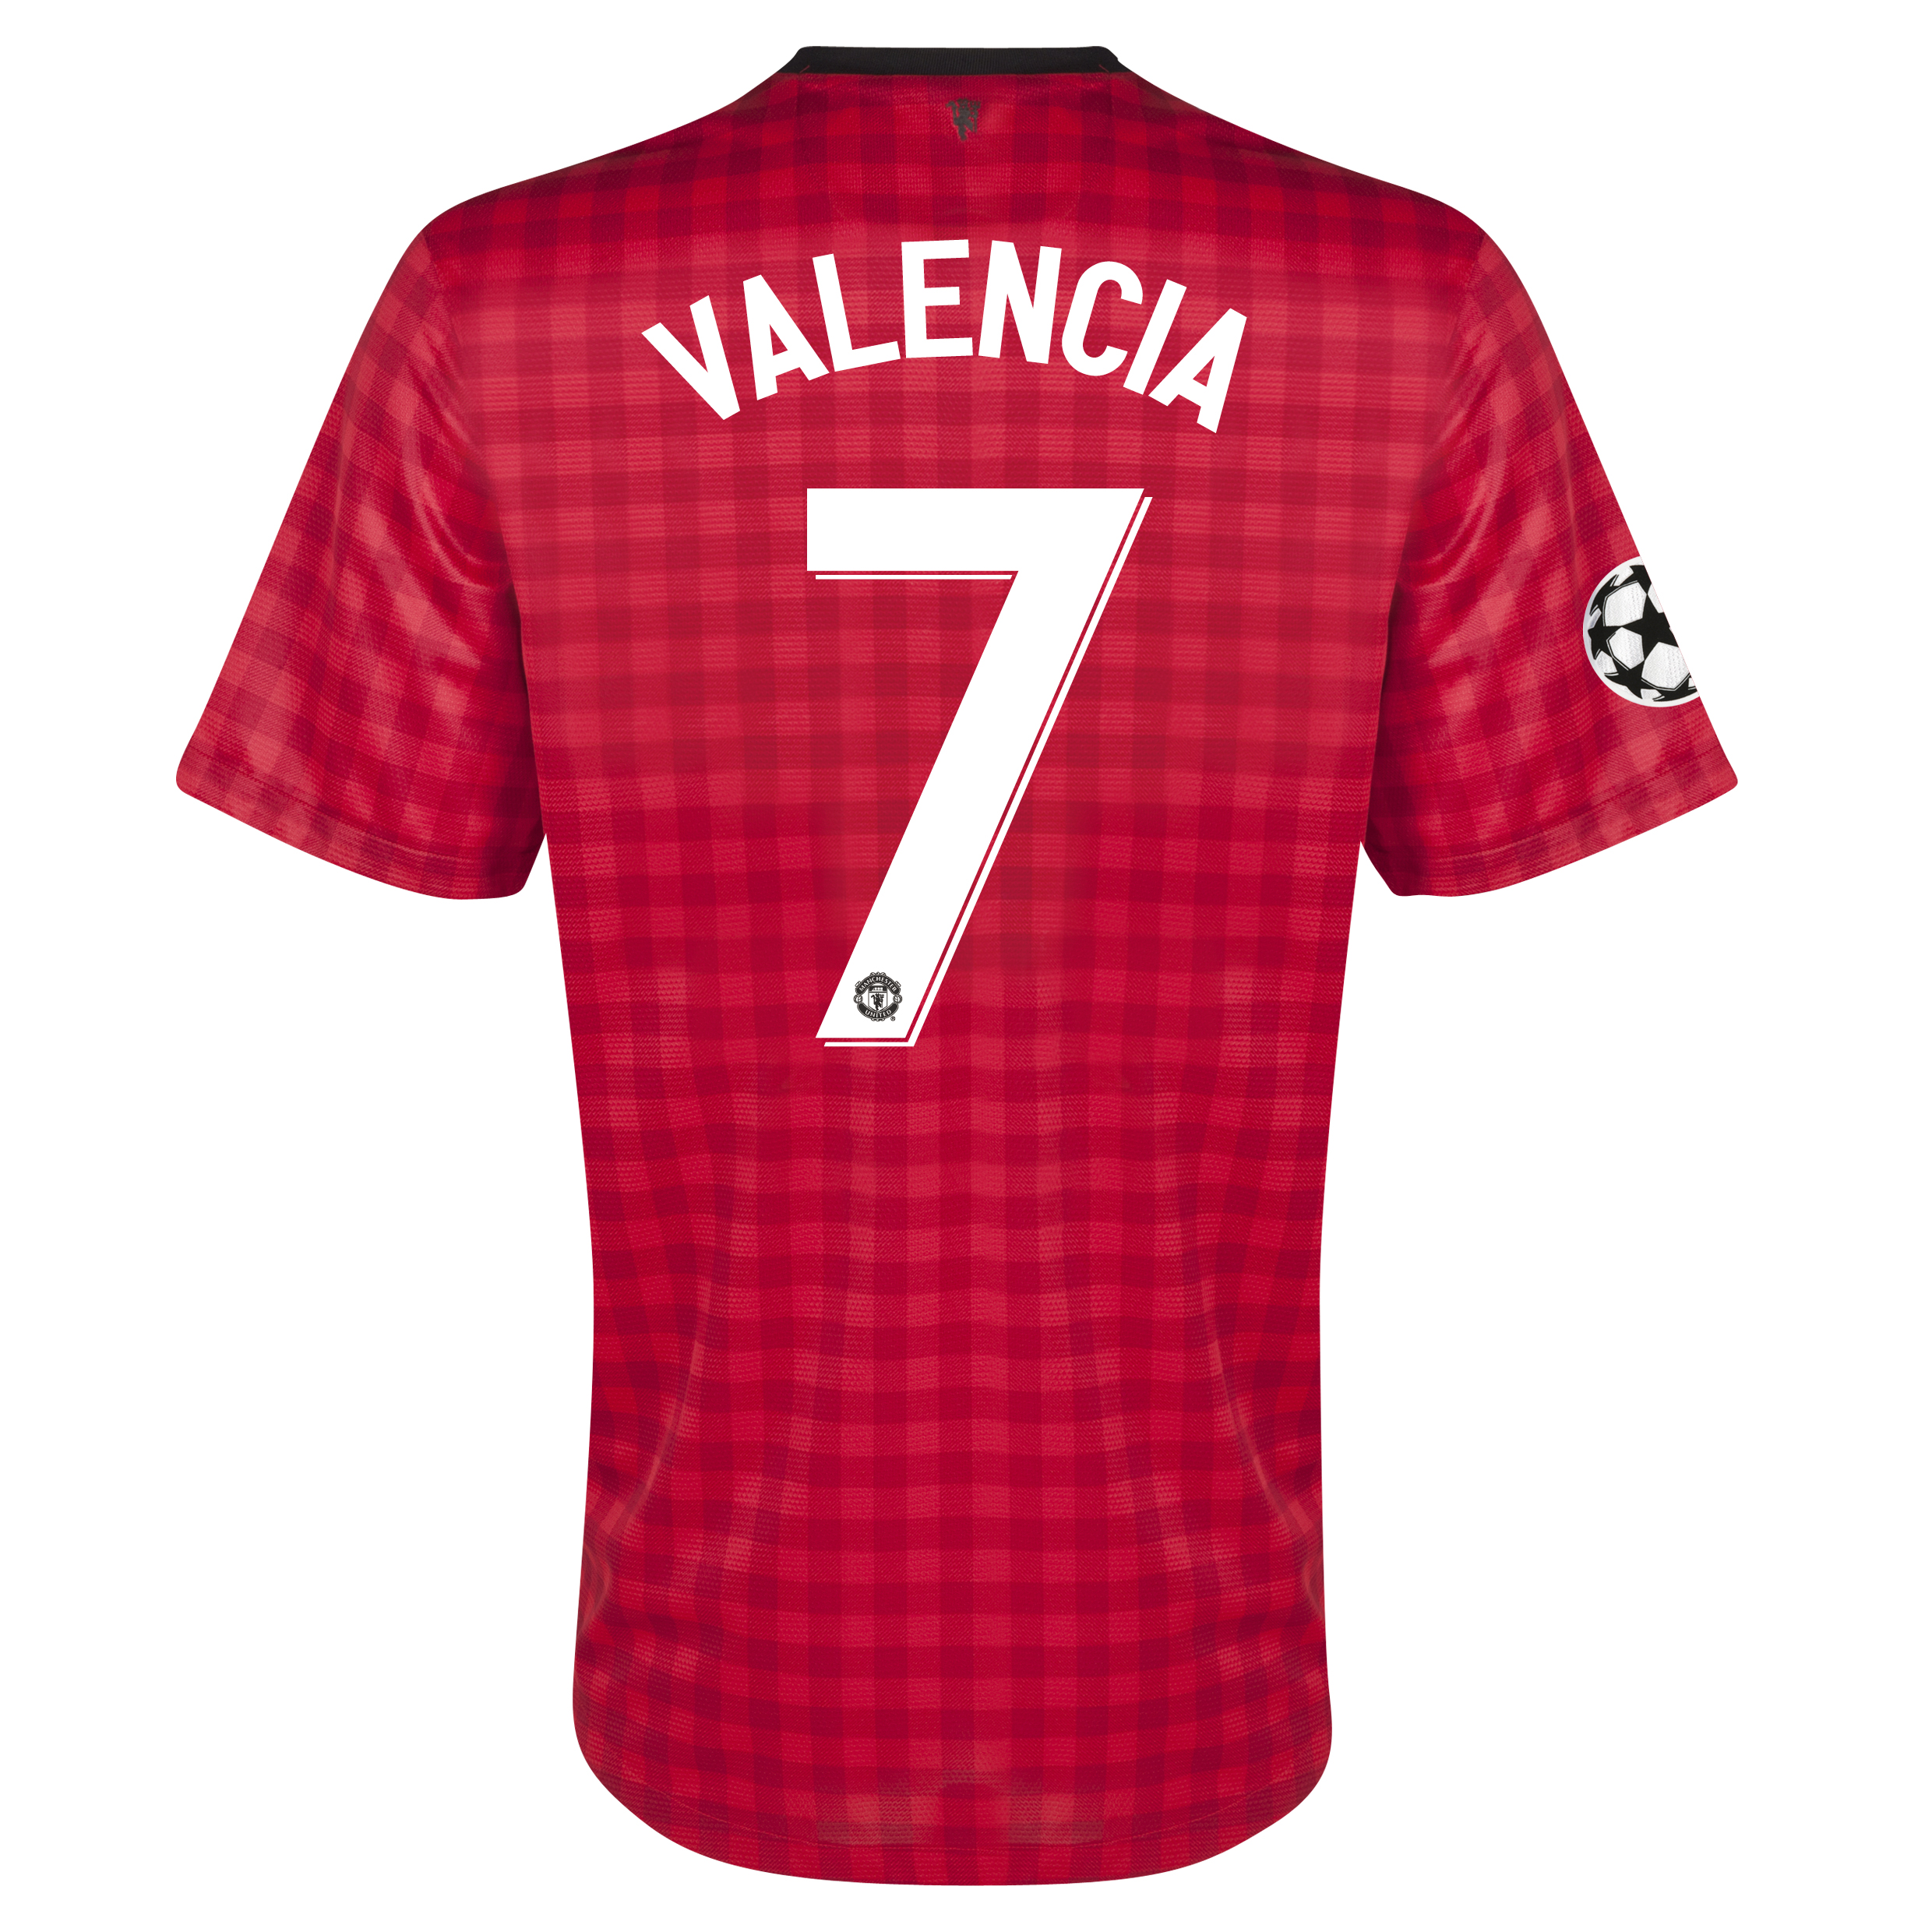 Manchester United UEFA Champions League Home Shirt 2012/13 with Valencia 7 printing